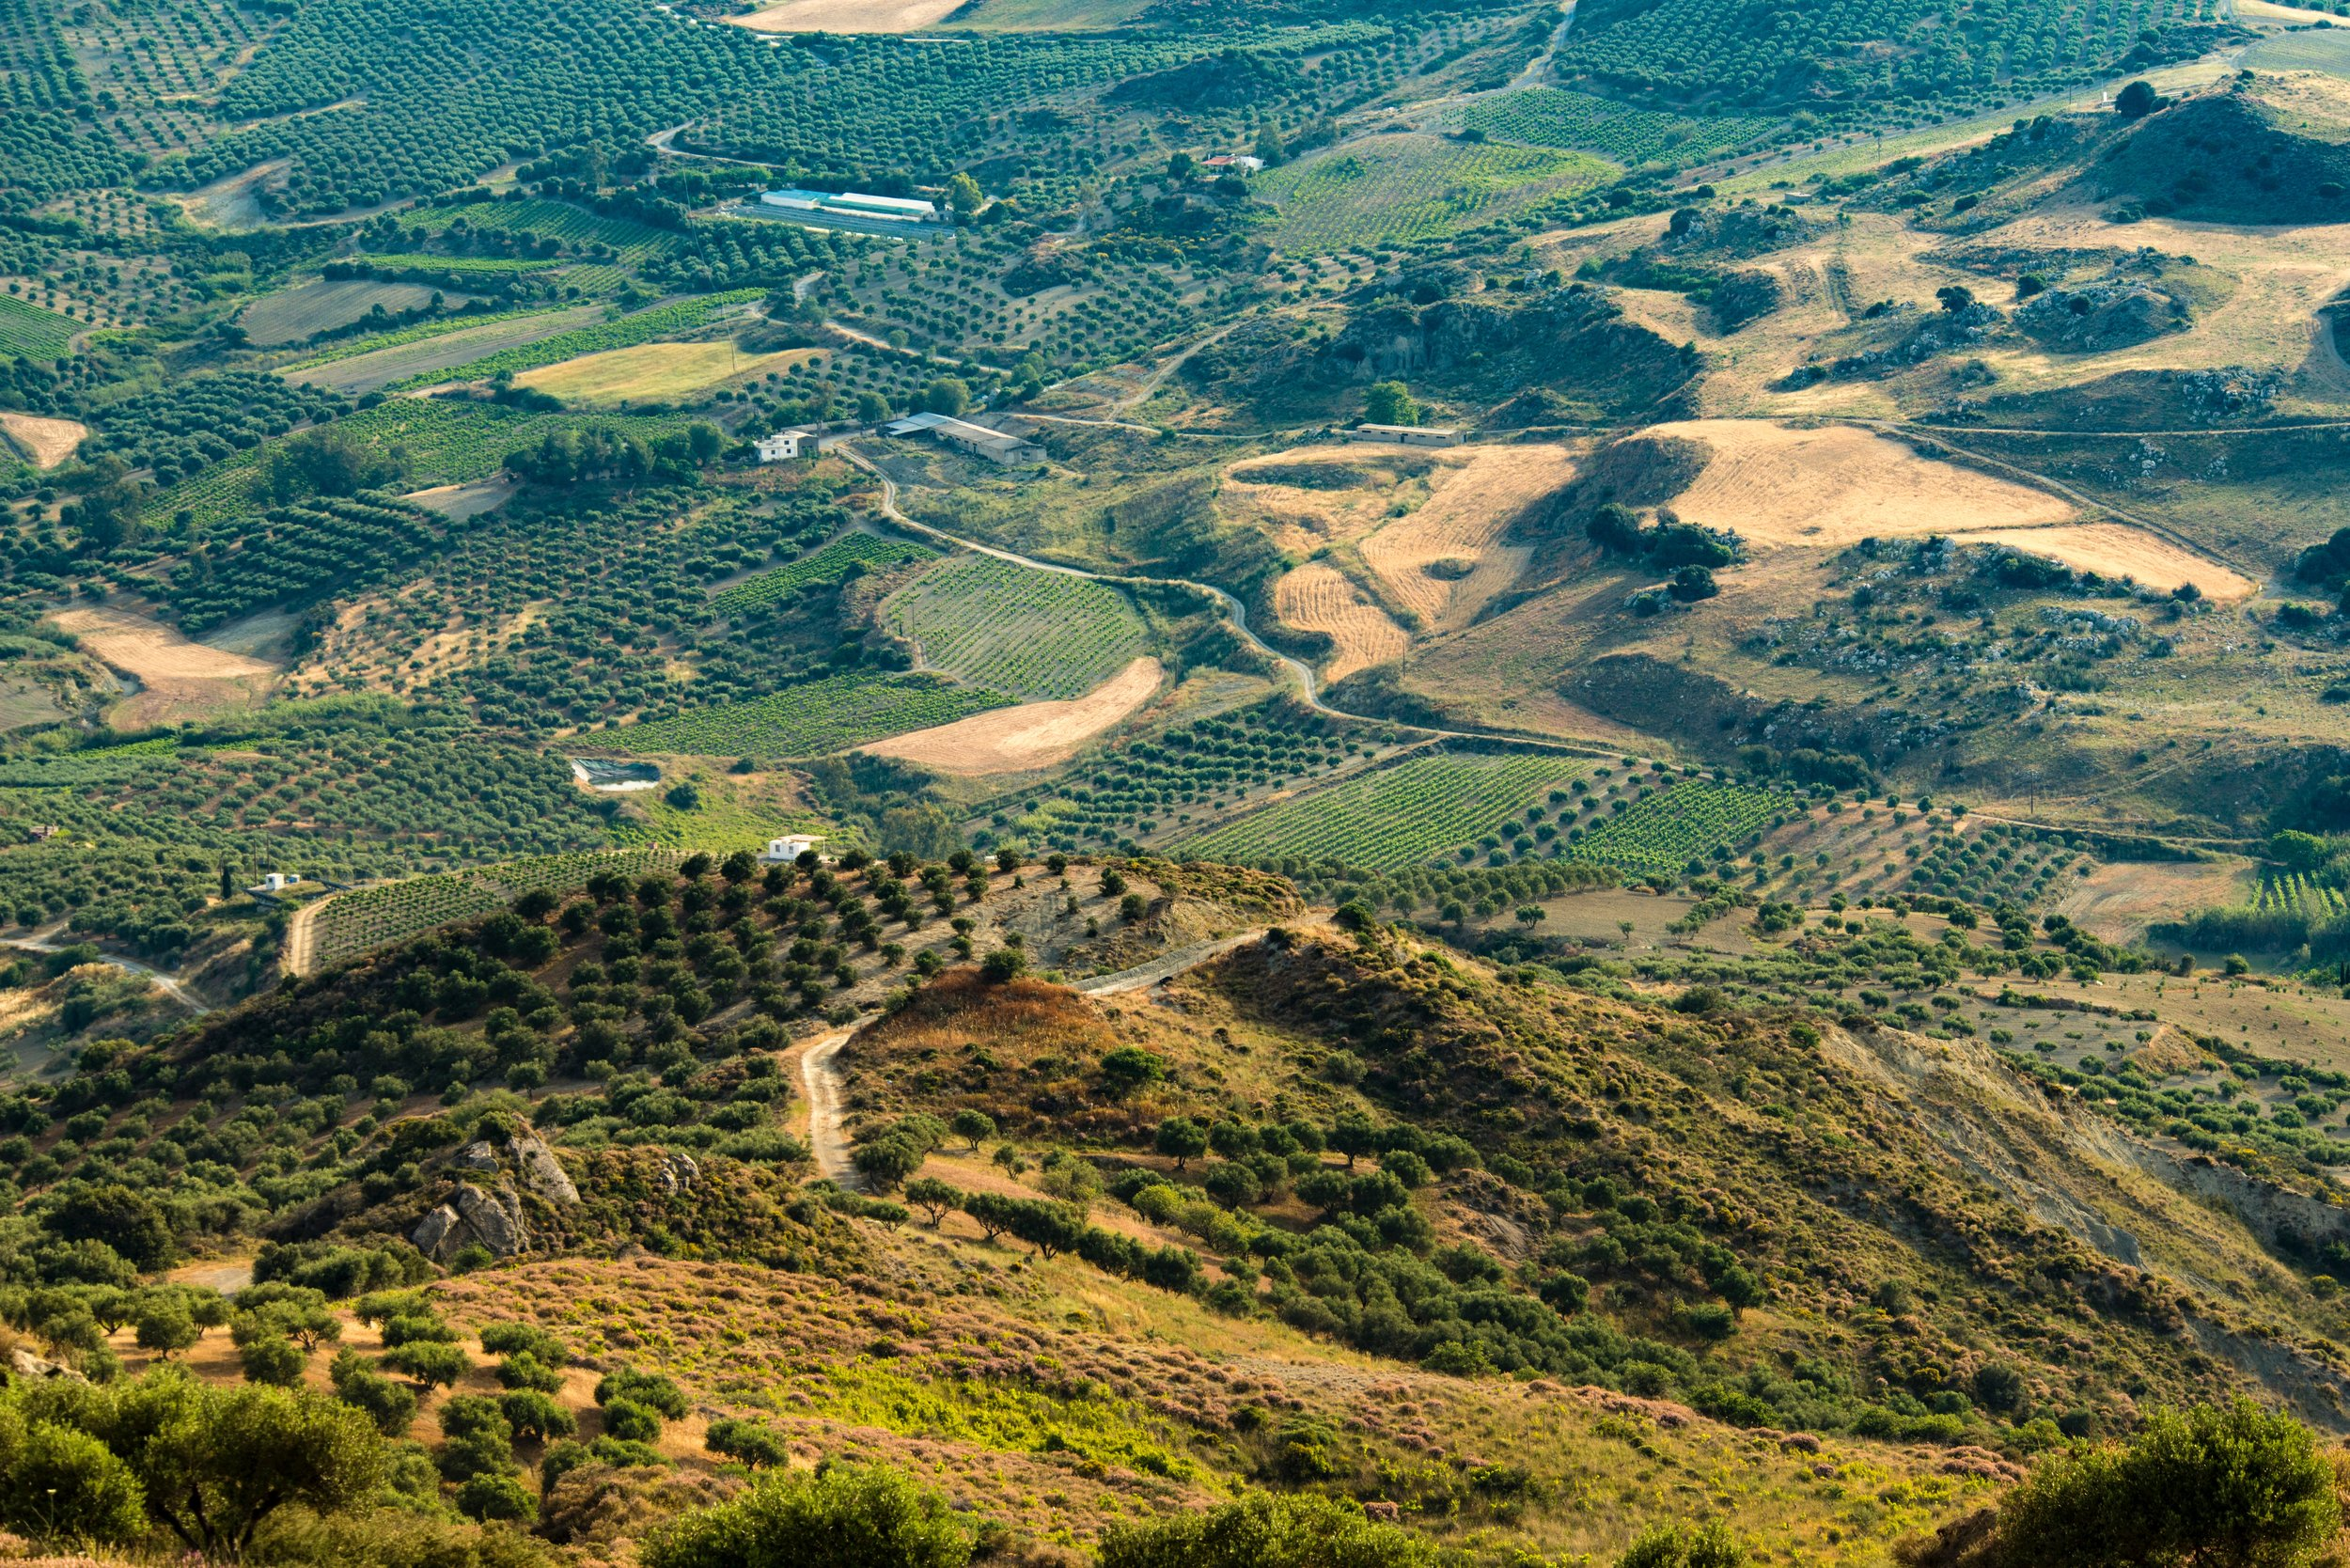 Landscape view of wine country